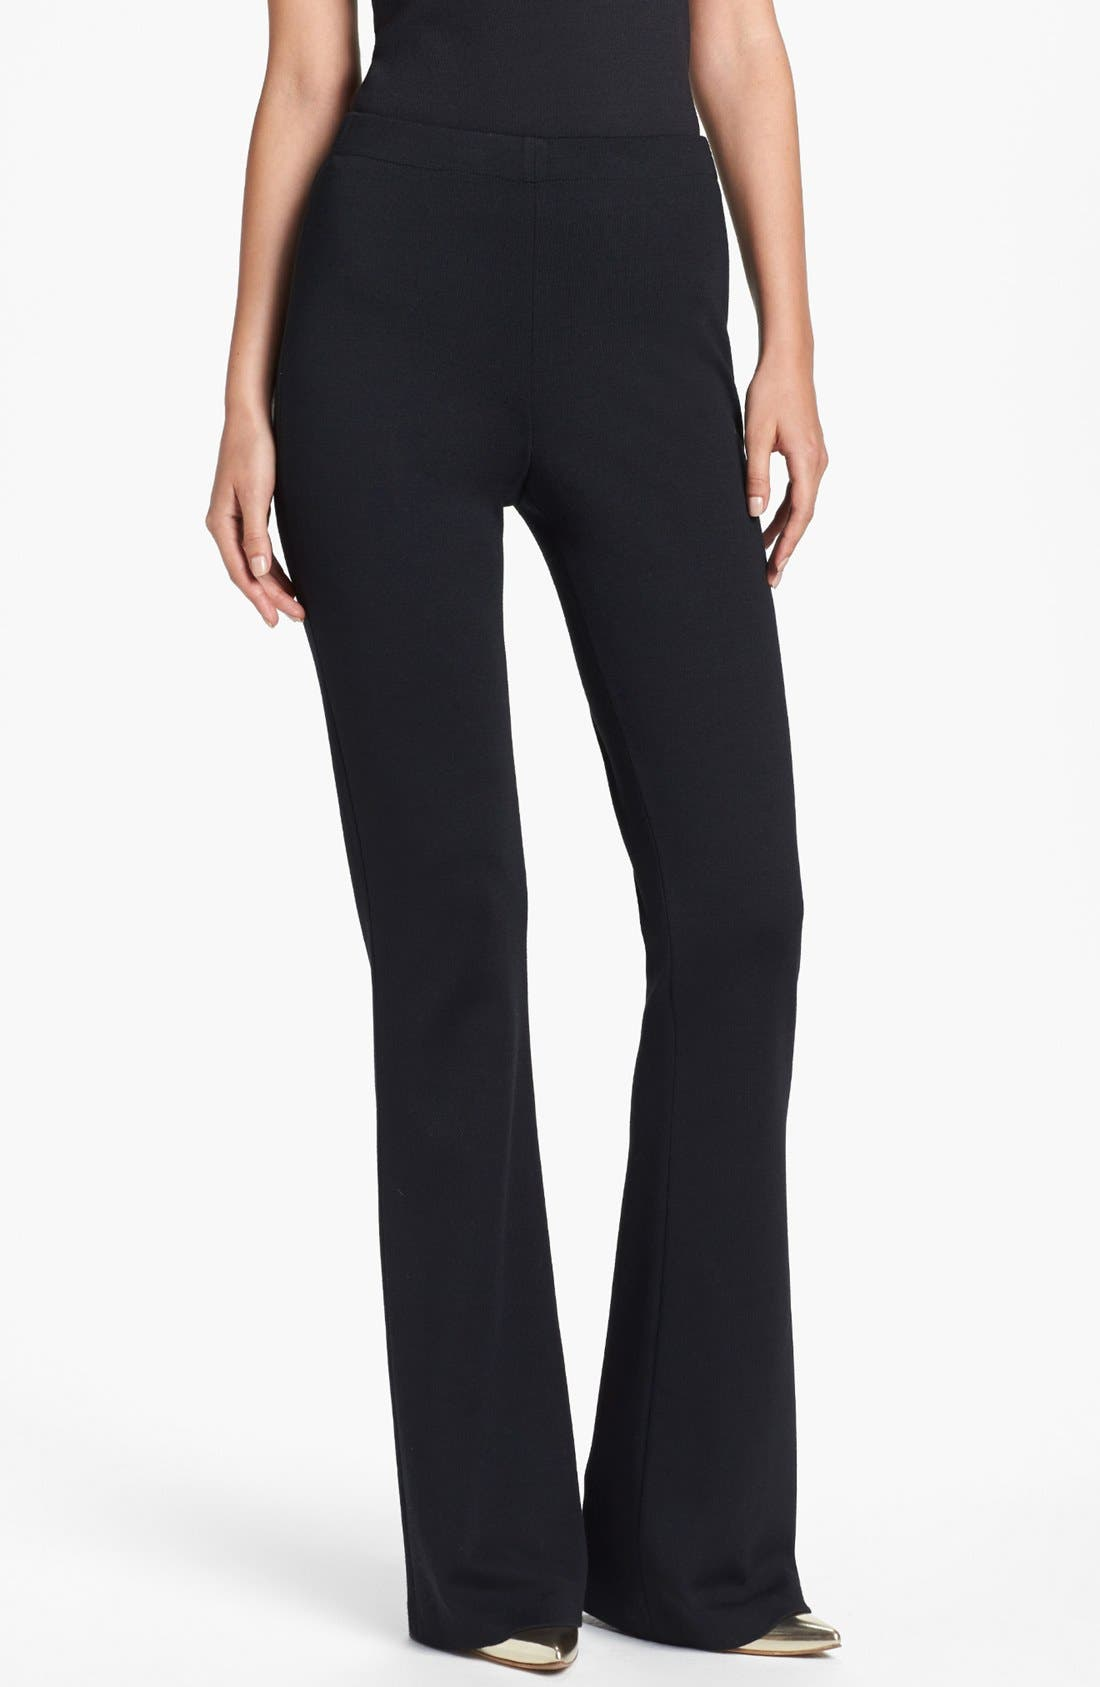 ST. JOHN COLLECTION, 'Kasia' Bootcut Milano Knit Pants, Main thumbnail 1, color, CAVIAR